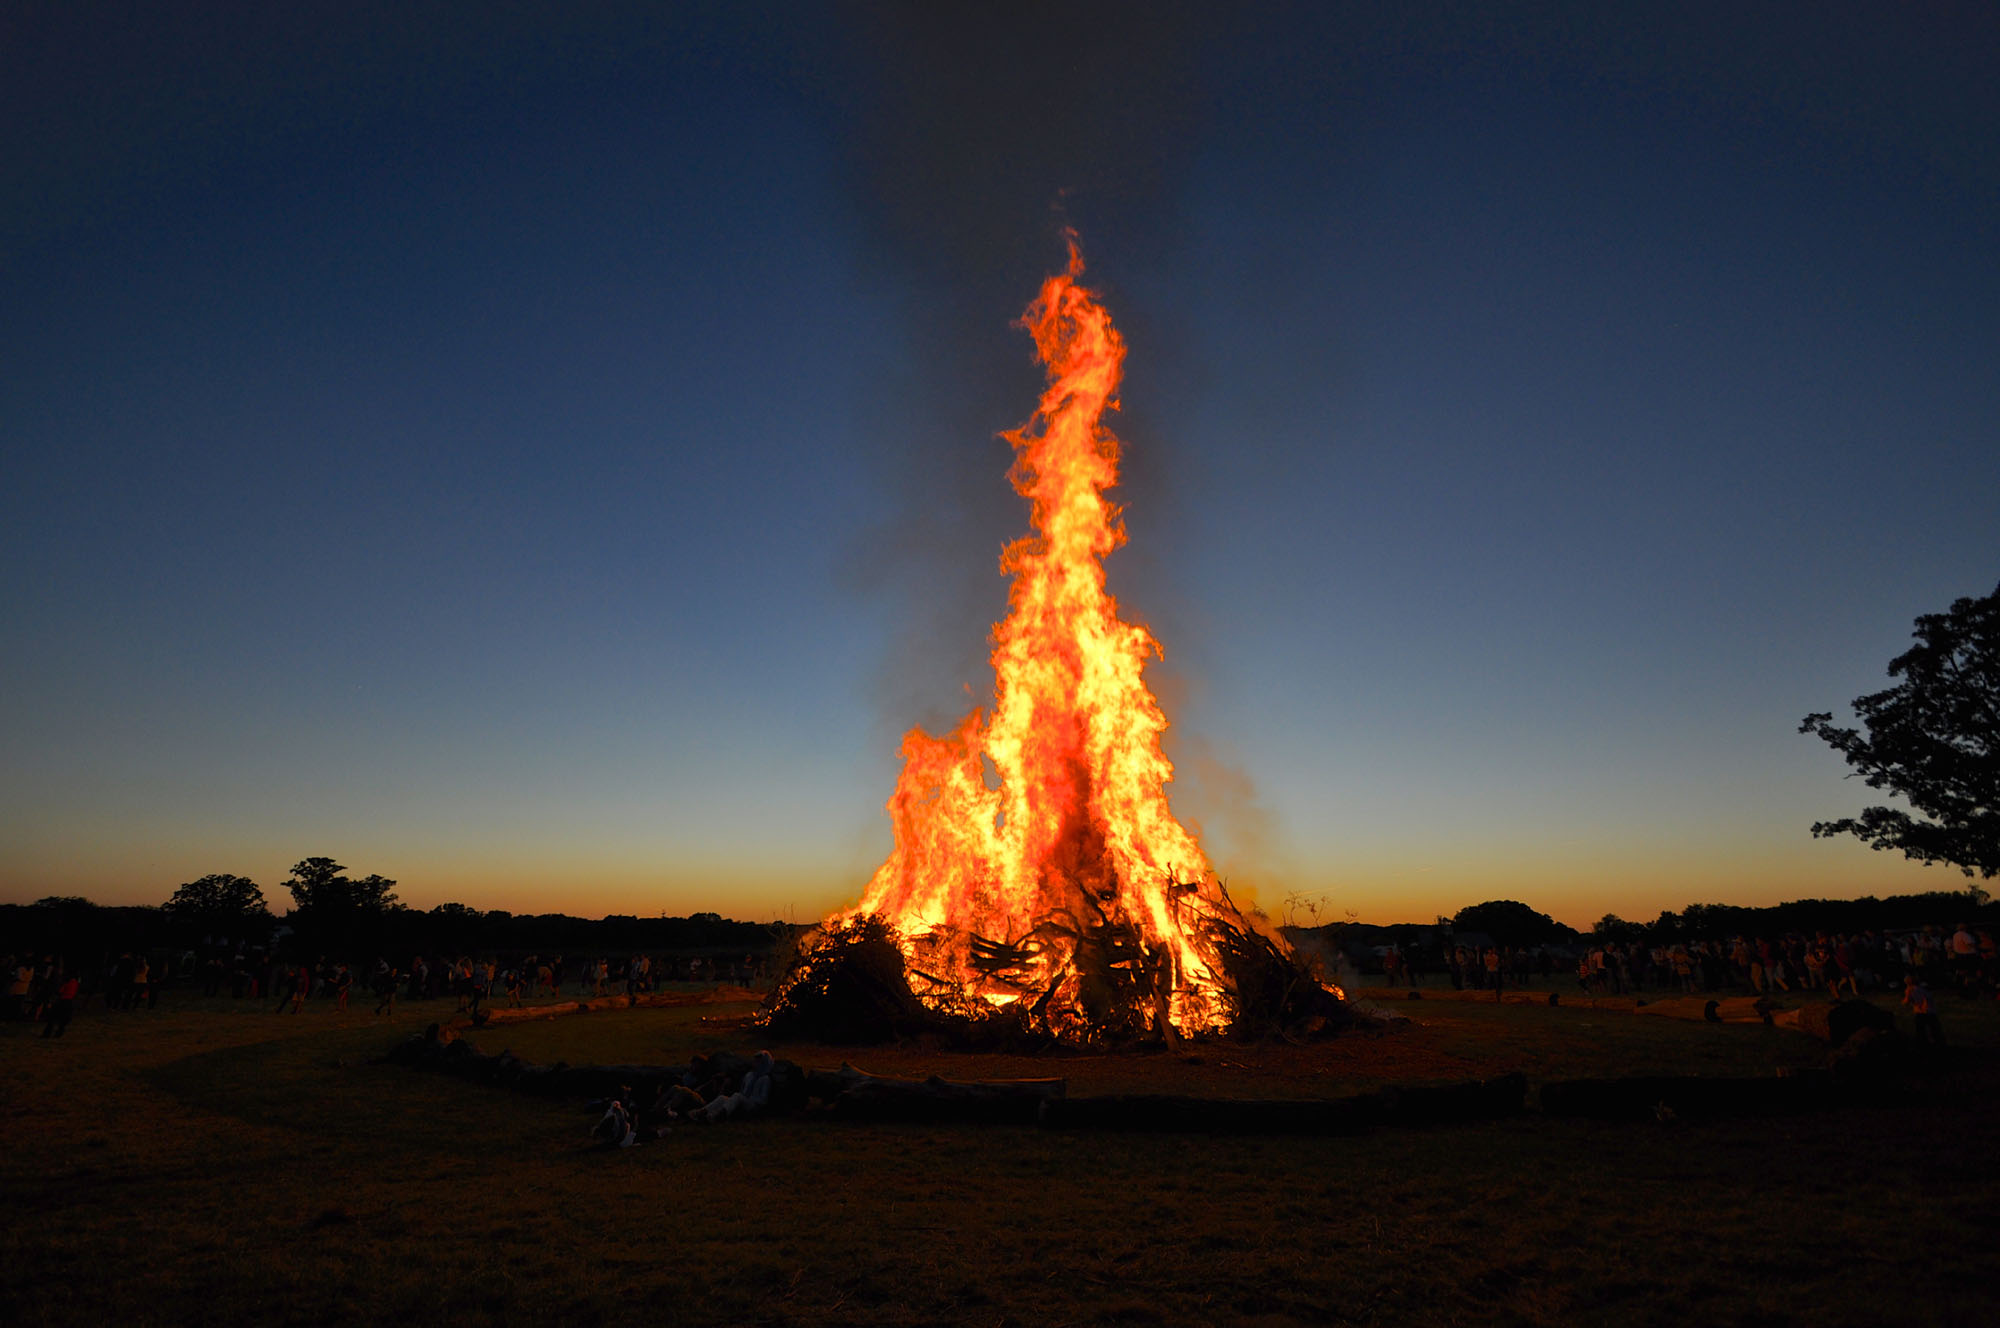 Bonfire - Come for s'mores, songs, stars, and fun. This is a family-friendly event. Bring chairs, blankets, bug spray, musical instruments, stories, and a sense of wonder